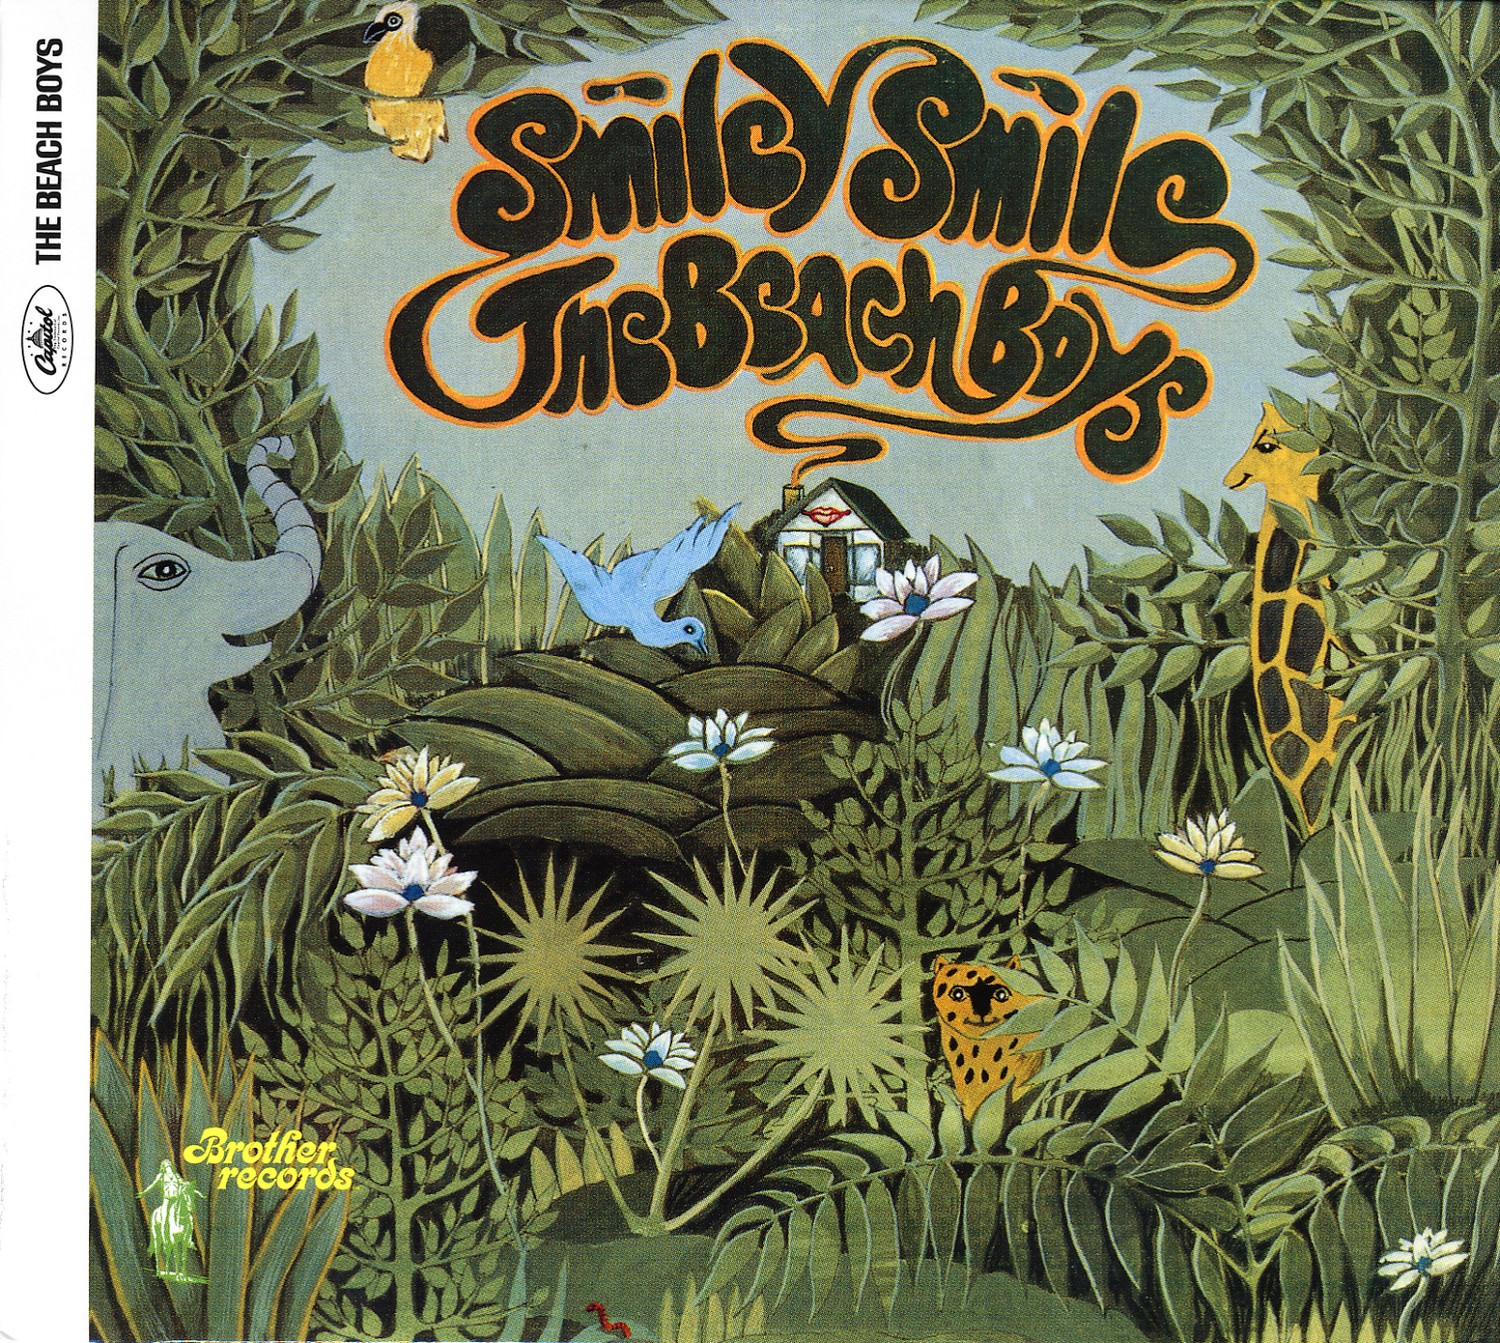 Smiley Smile (Mono & Stereo Remasters) cover